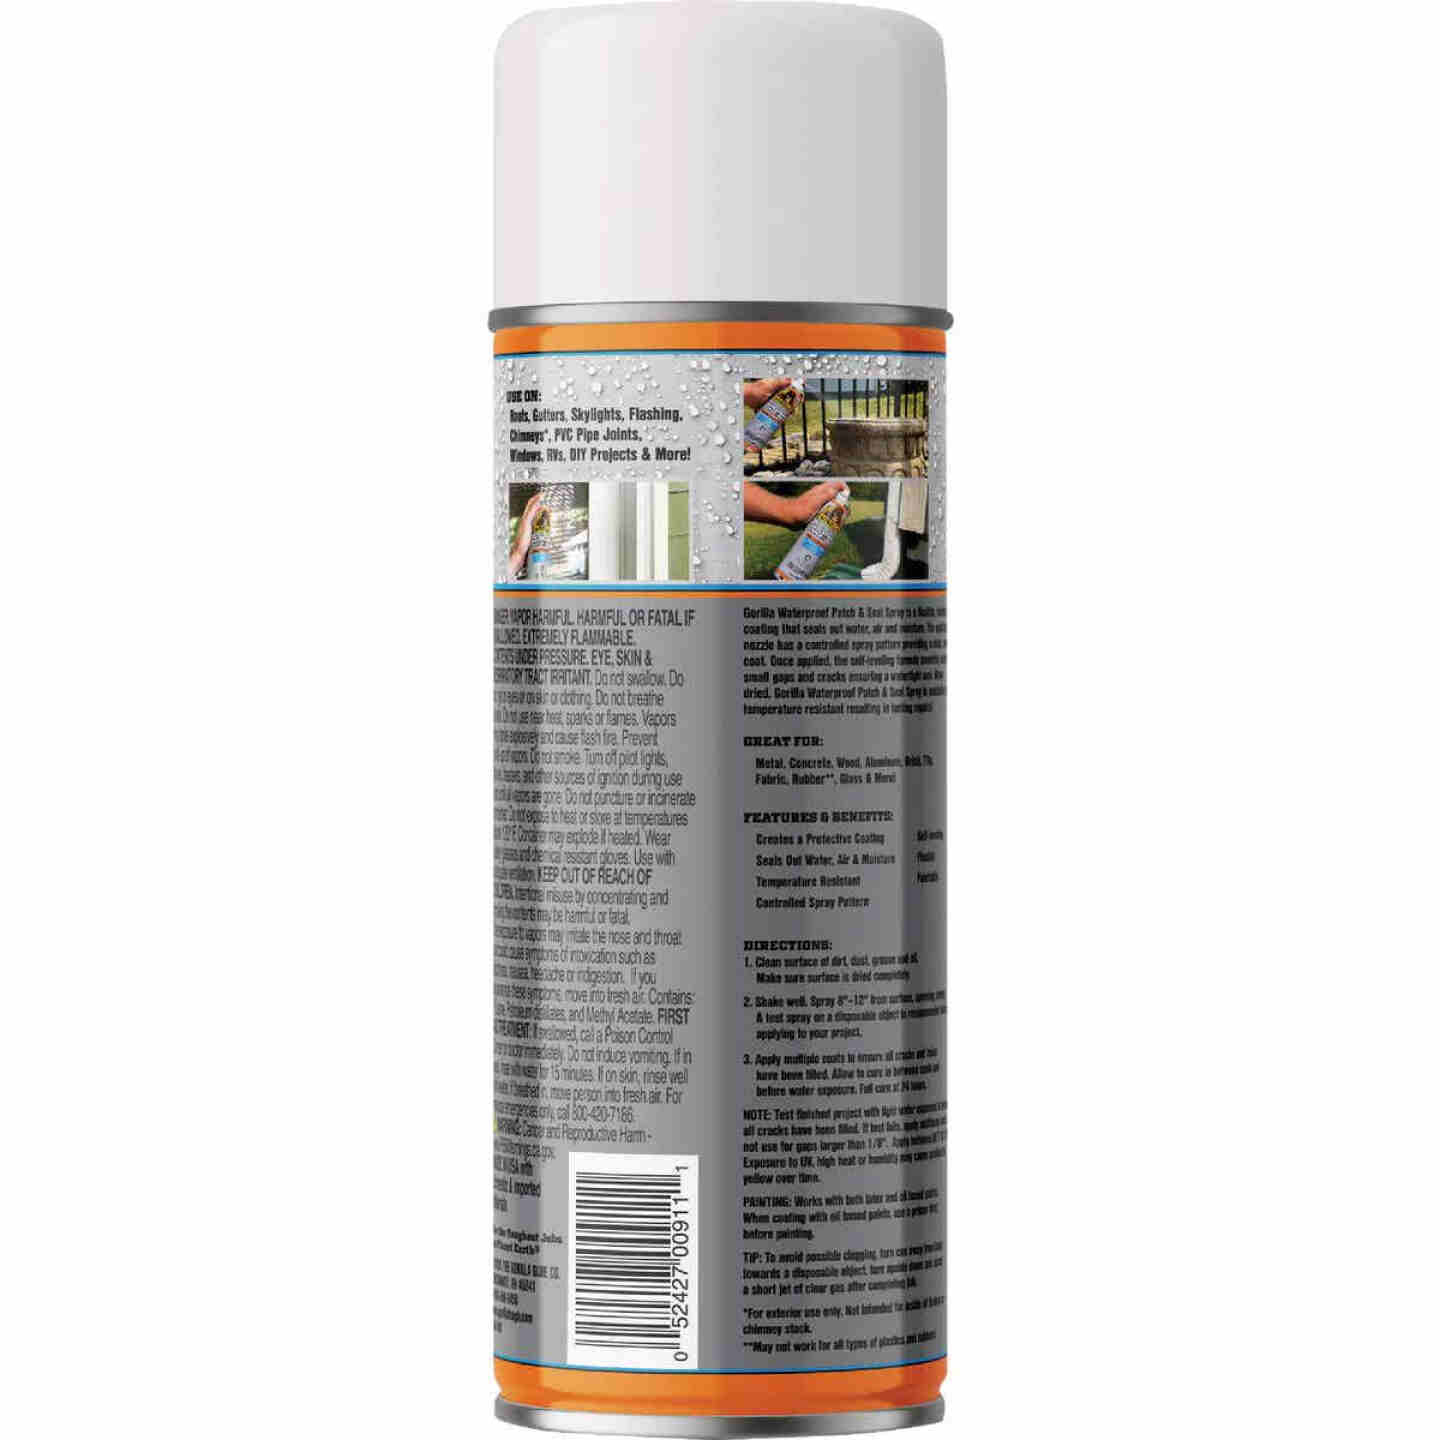 Gorilla 14 Oz. Clear Waterproof Patch & Seal Spray Image 5